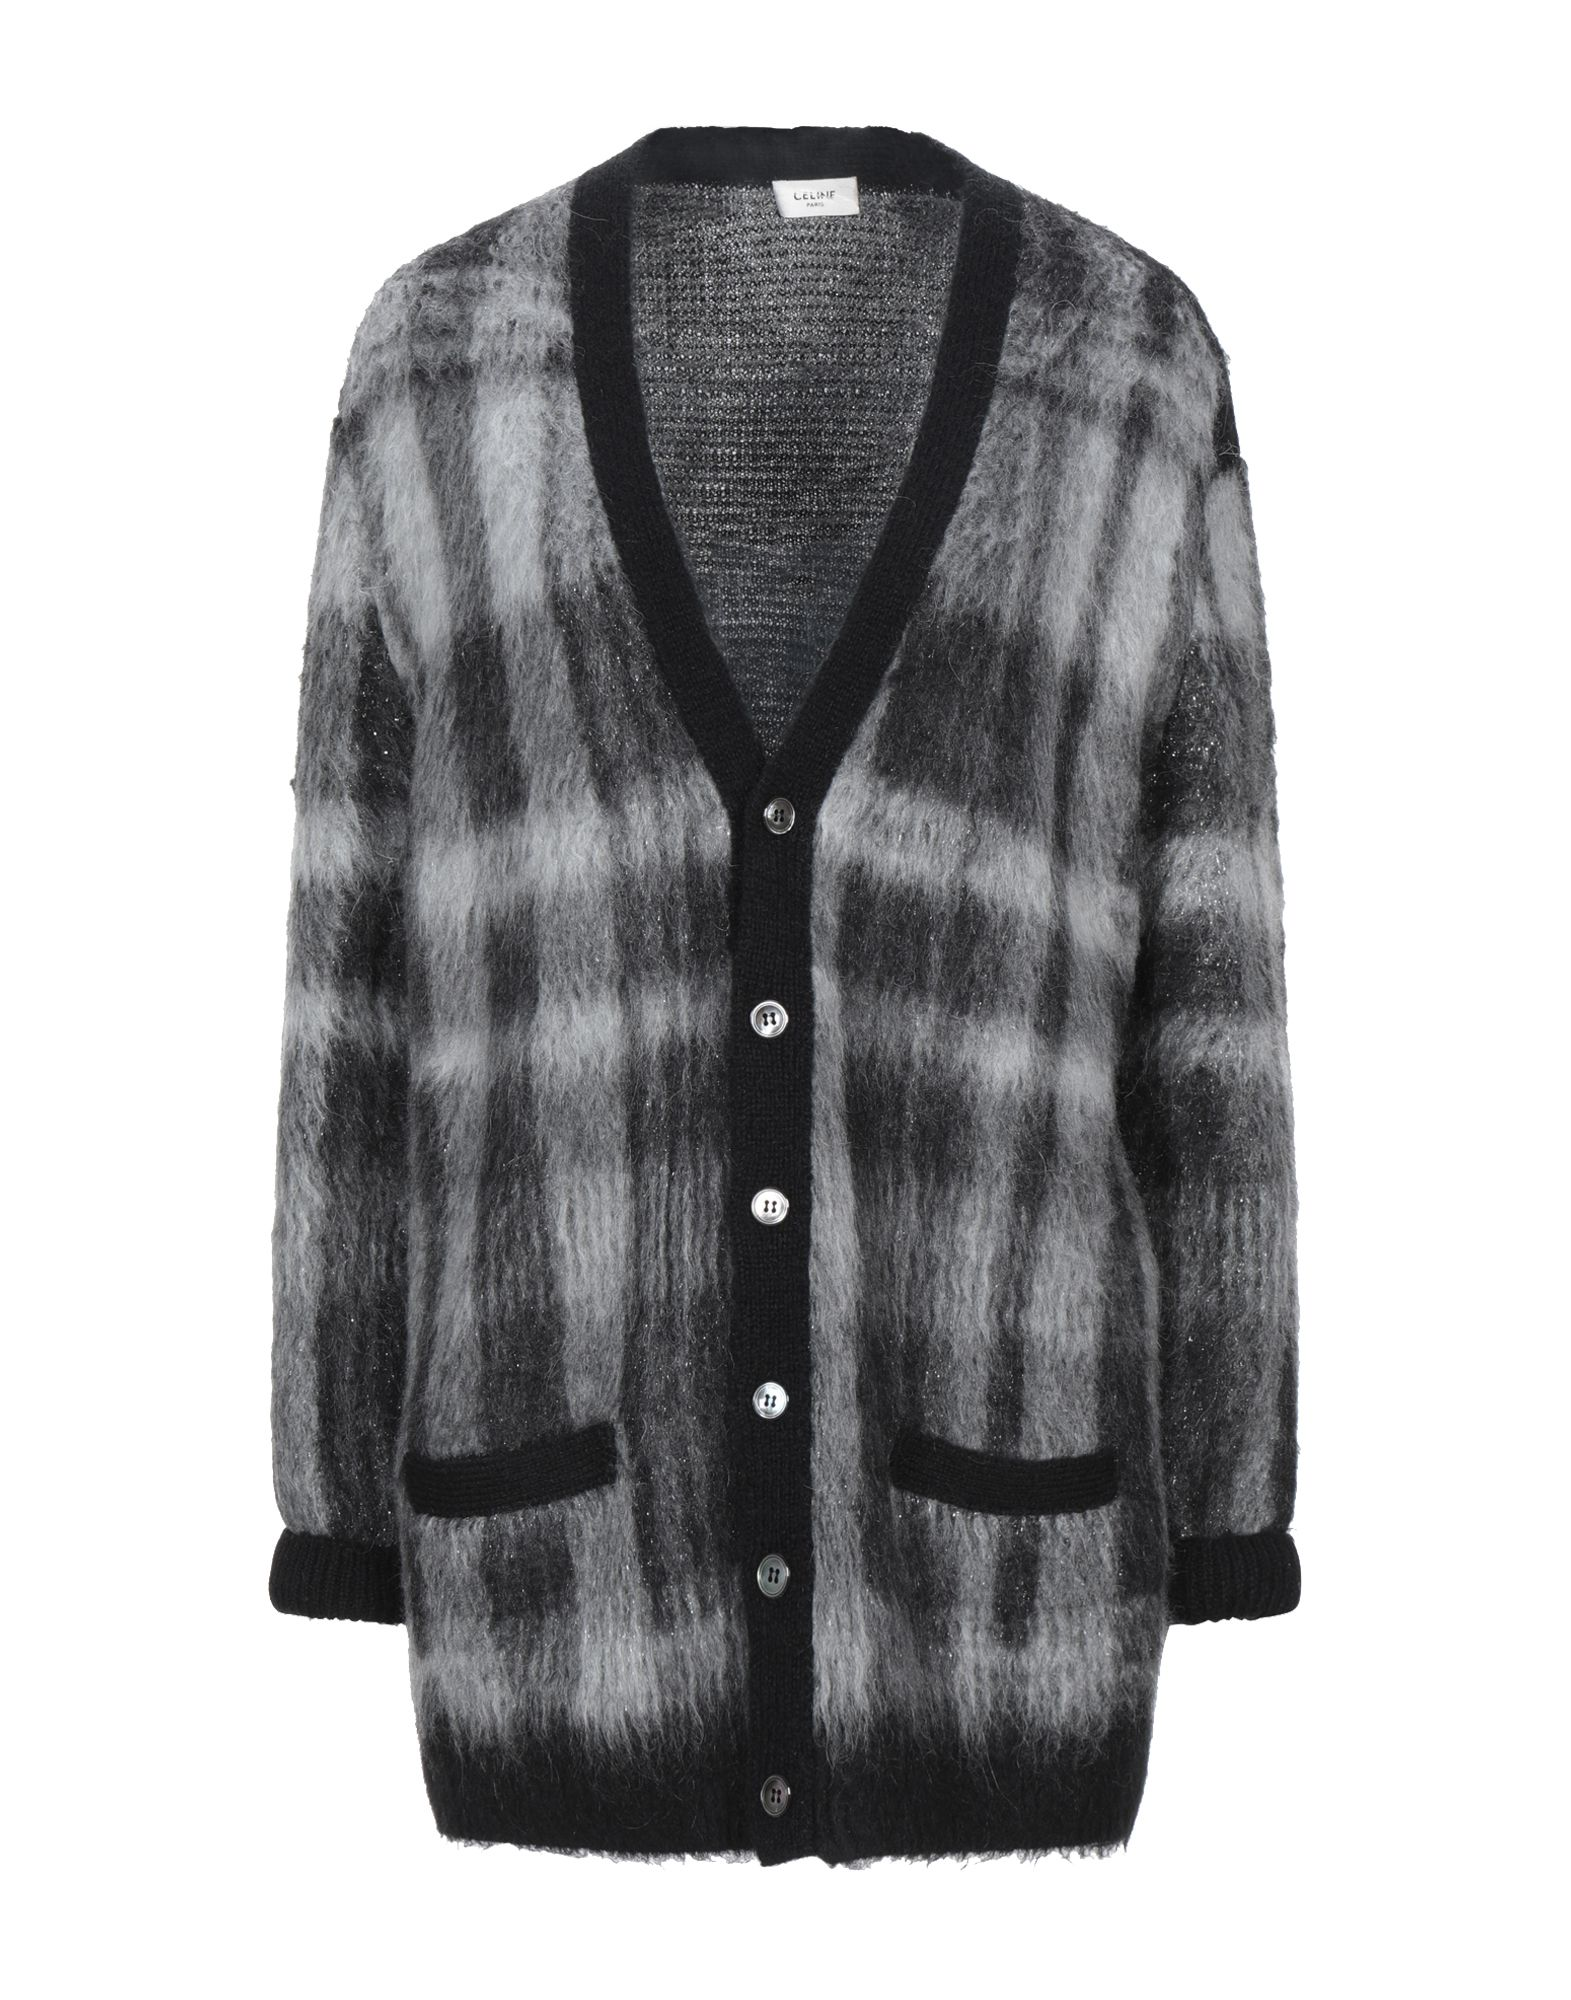 knitted, lamé, no appliqués, medium-weight knit, v-neck, checked, long sleeves, front closure, butto